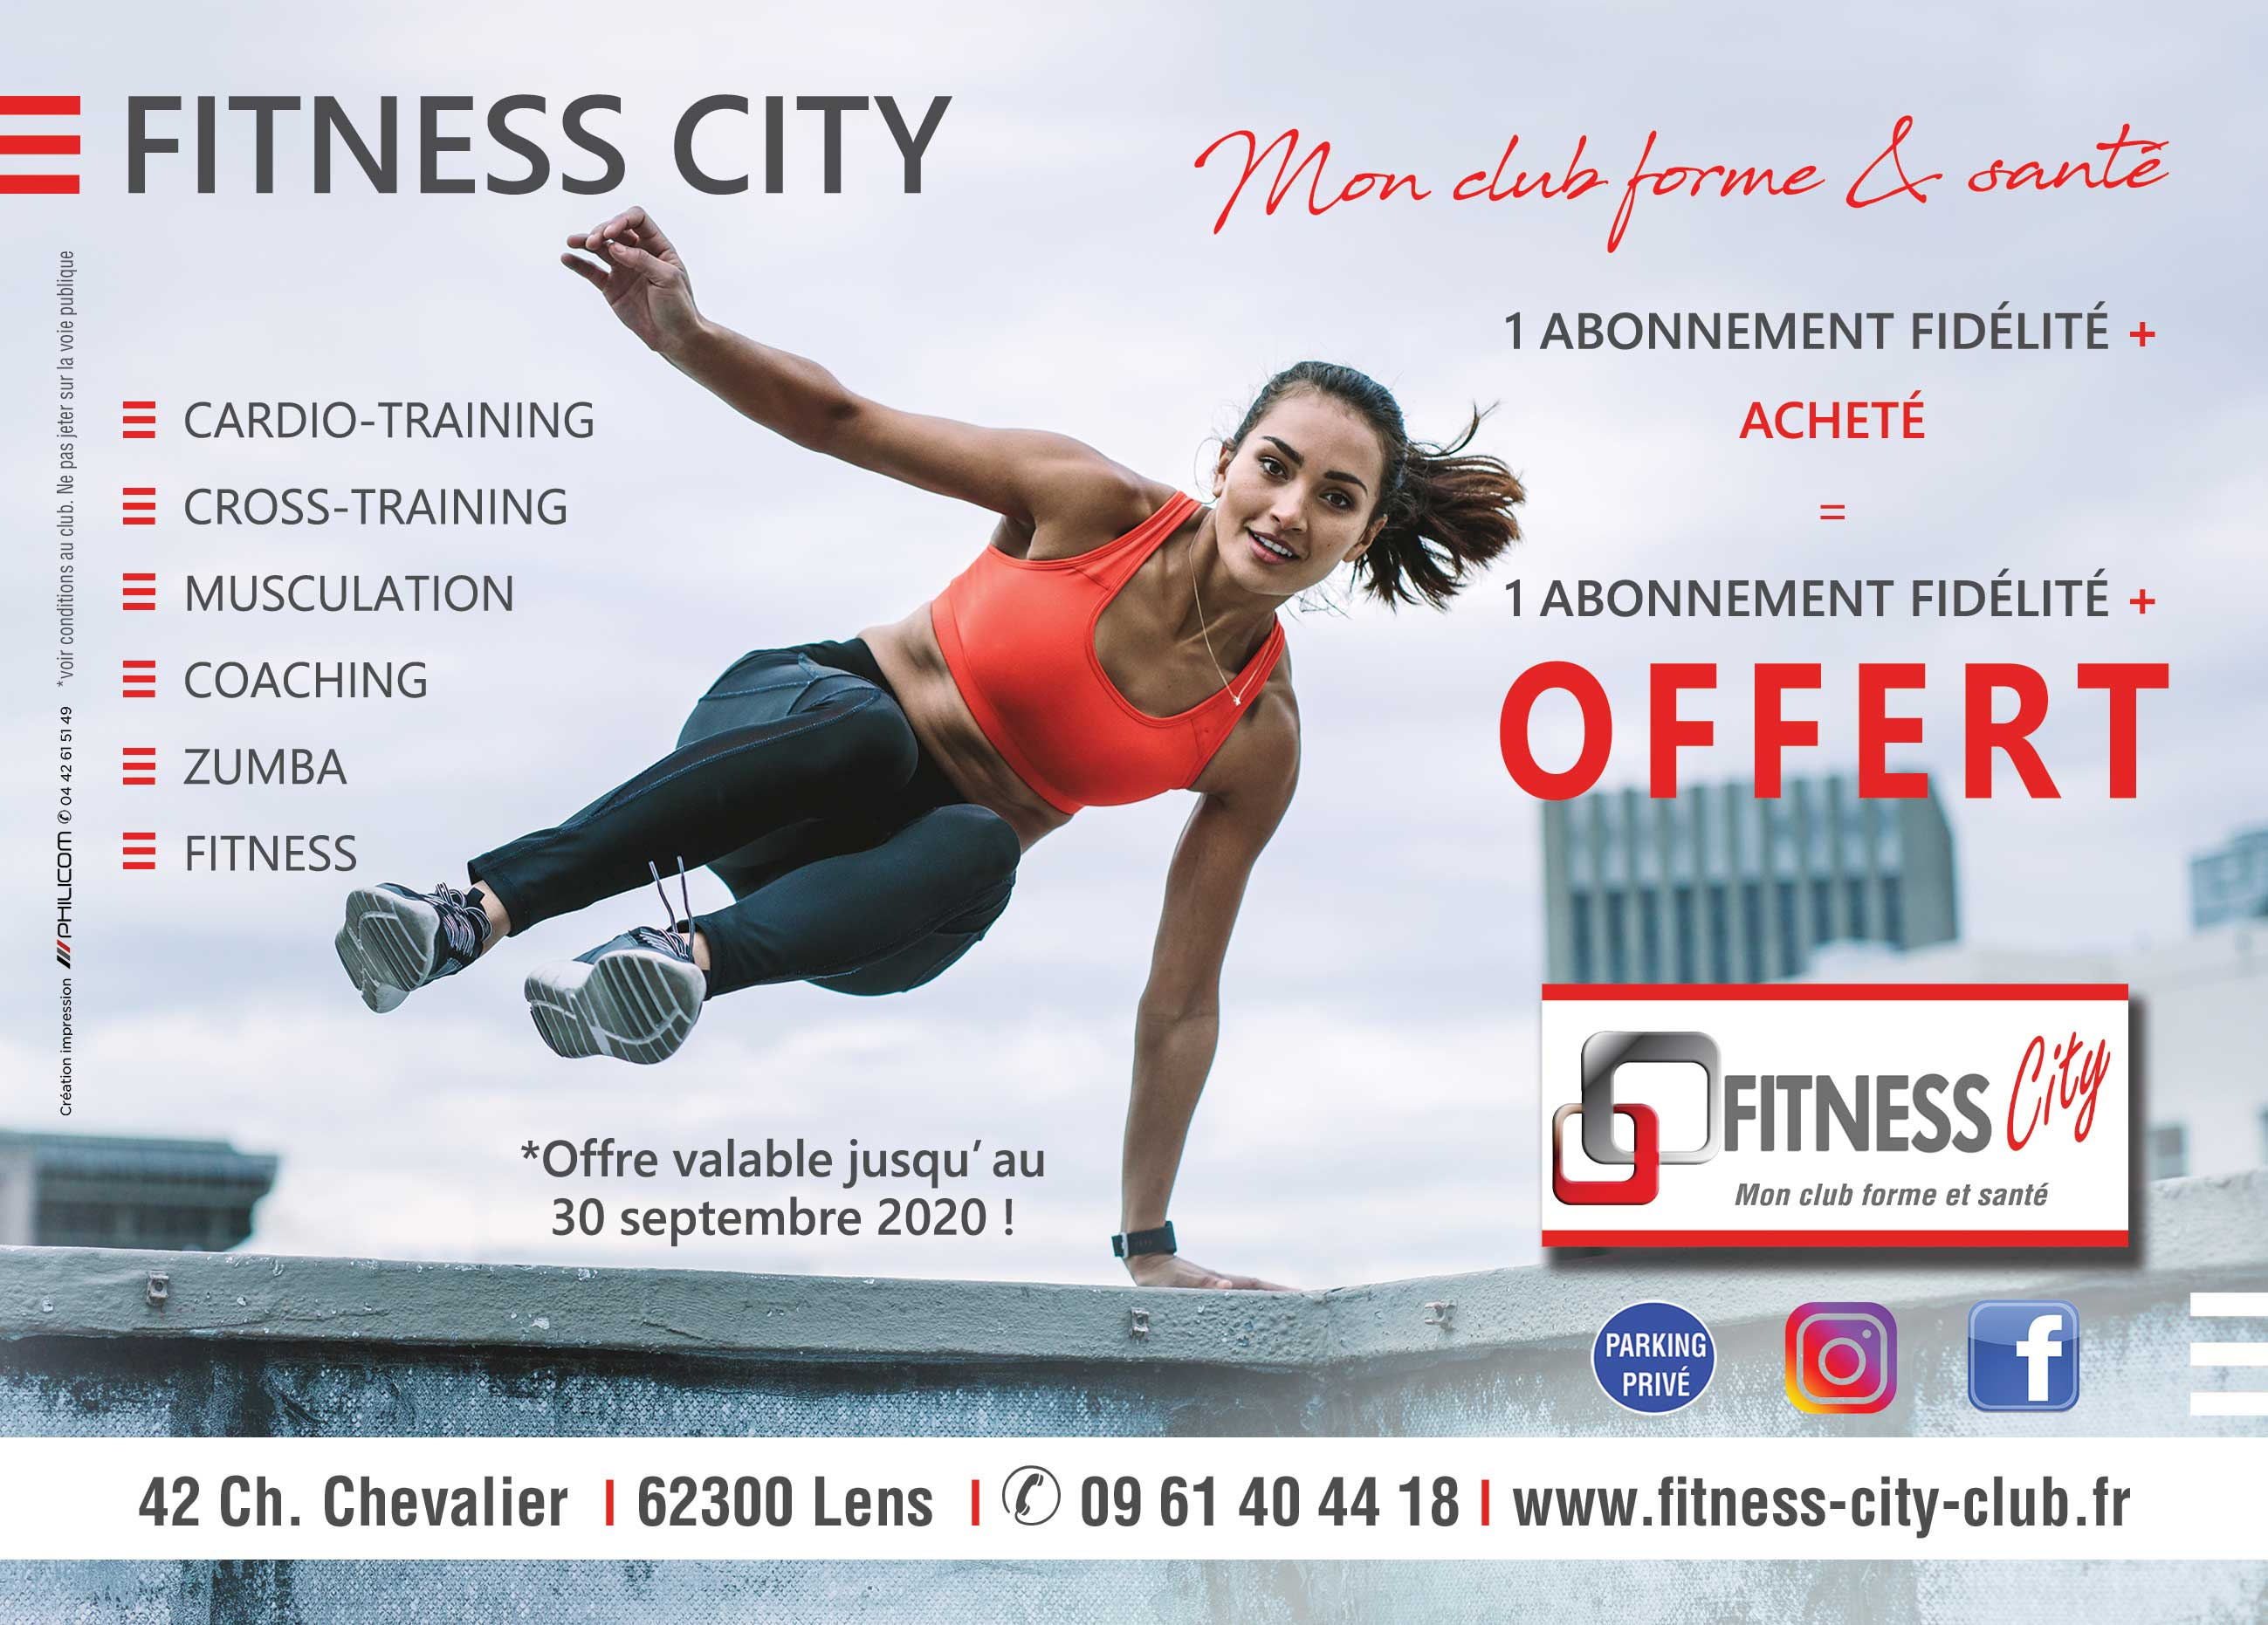 CITY-FITNESS-juillet-20-A5-recto